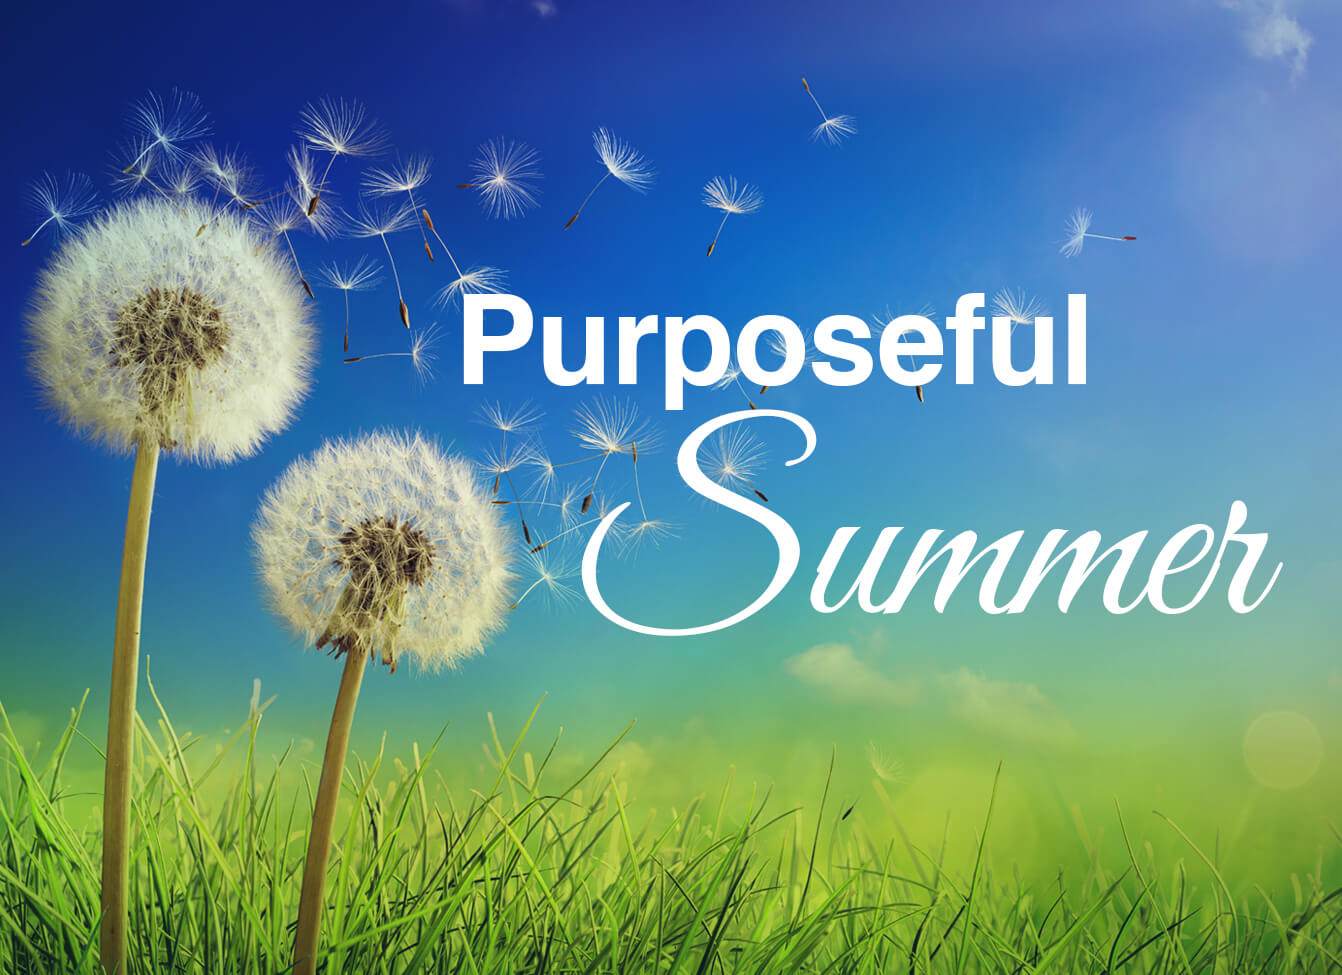 Join us for a Purposeful Summer